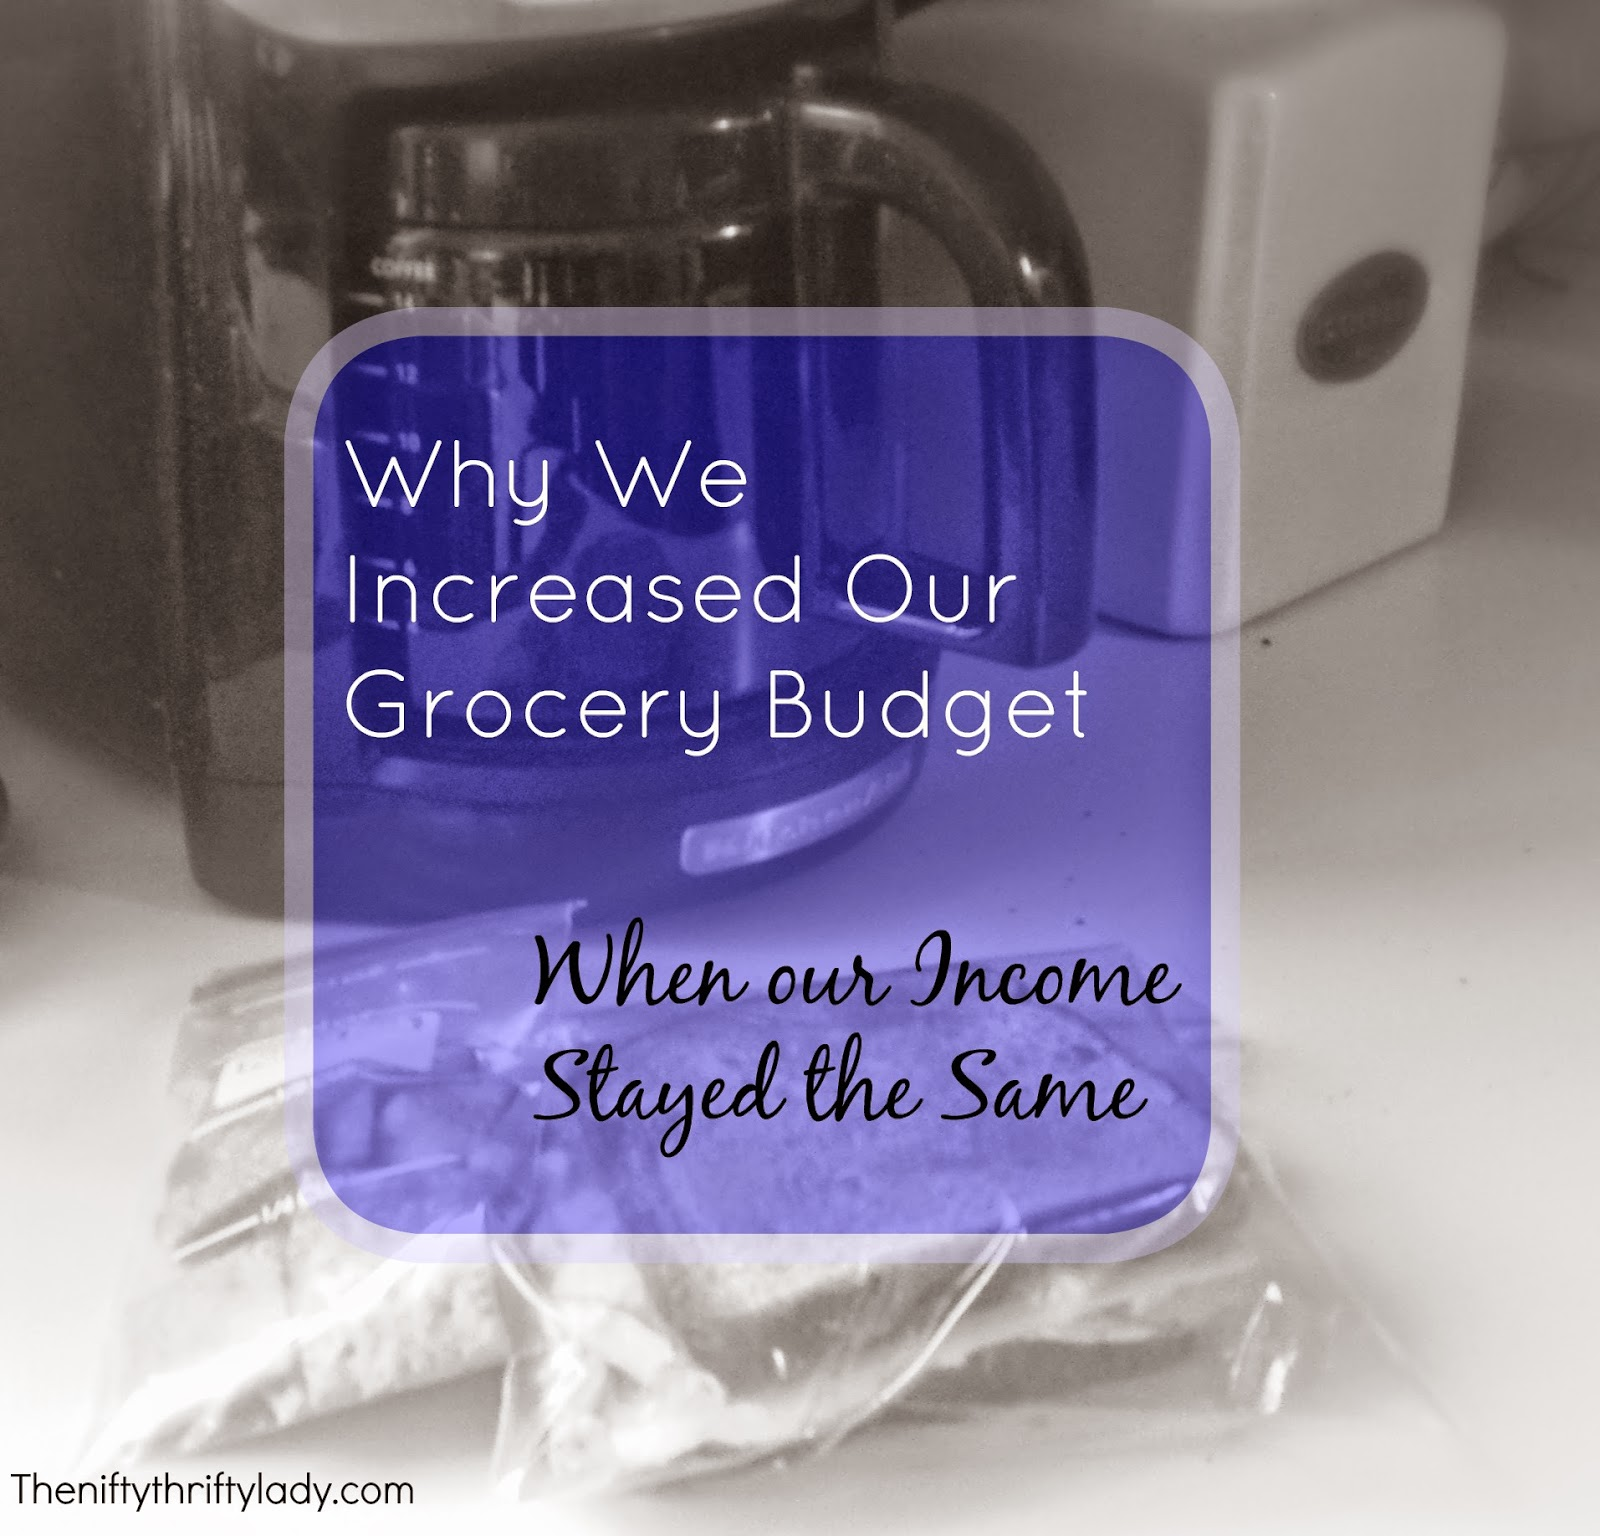 Increasing your Grocery Budget